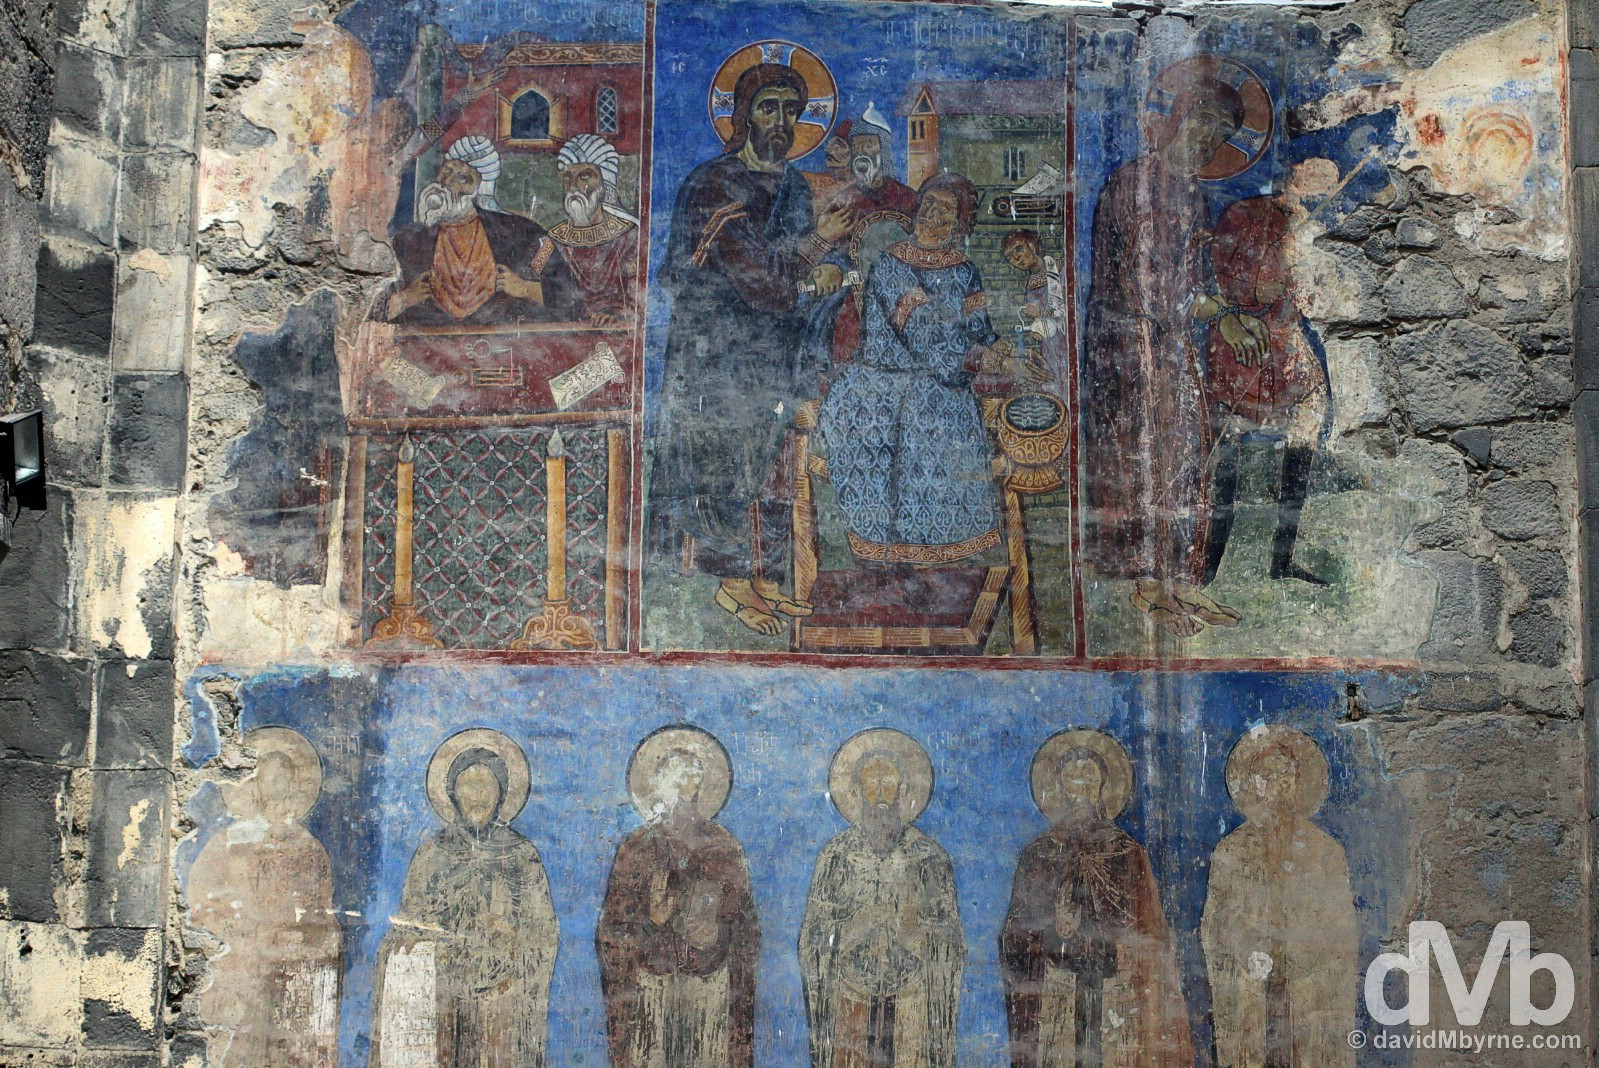 Murals on the walls of the Akhtala Monastery in Lori Marz, Armenia. March 26, 2015.